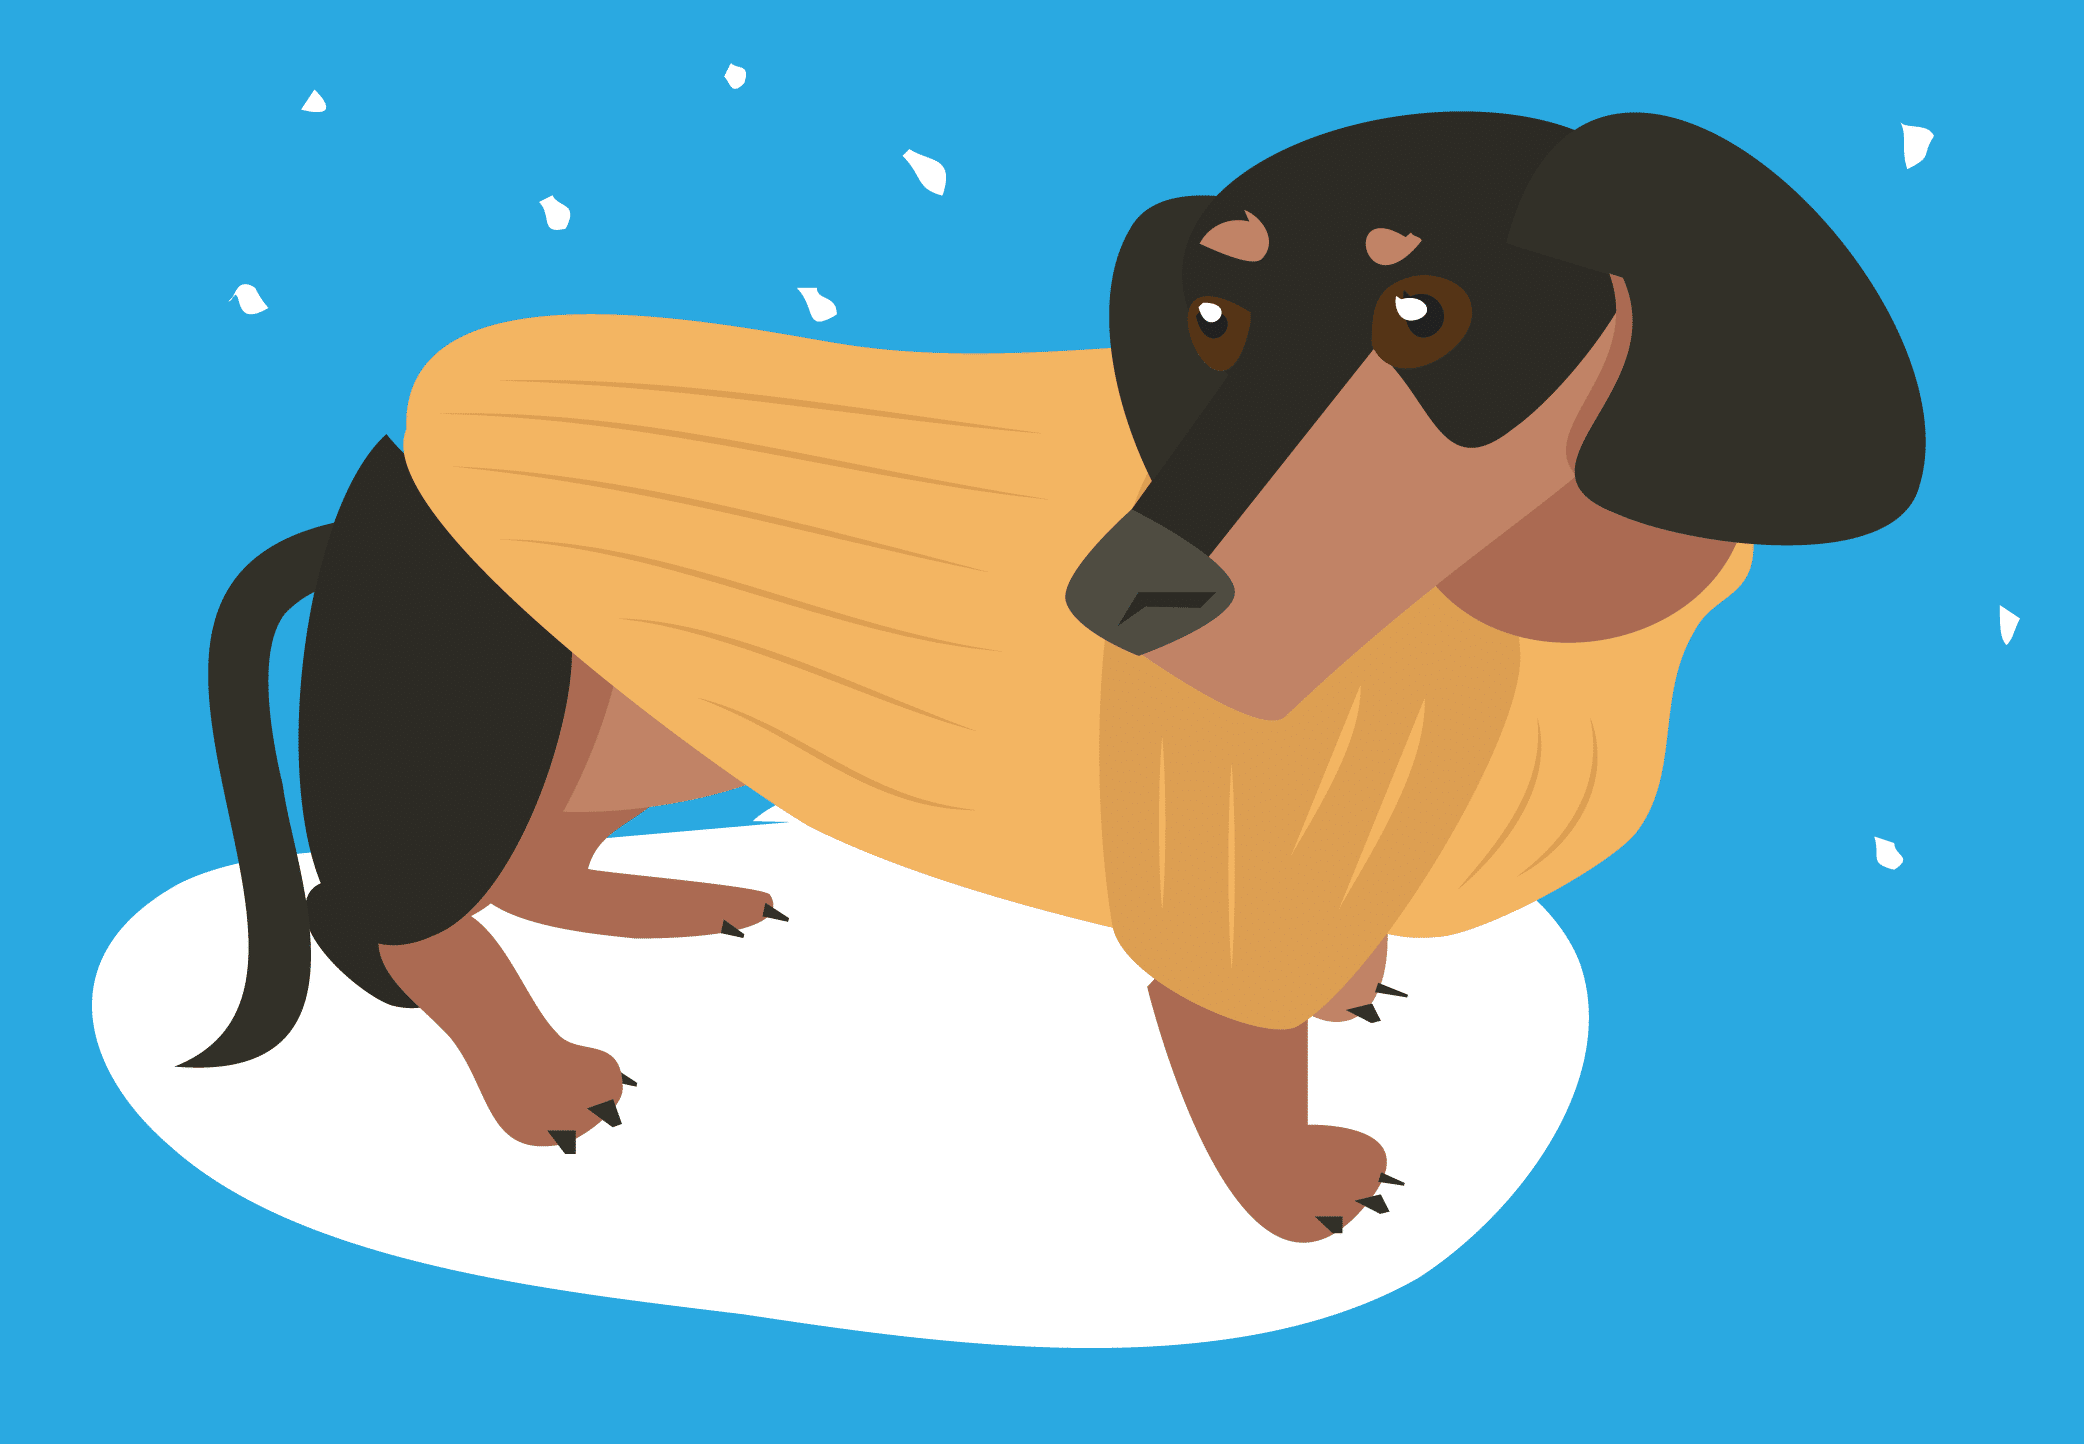 Illustration of a dachshund dog wearing a sweater.